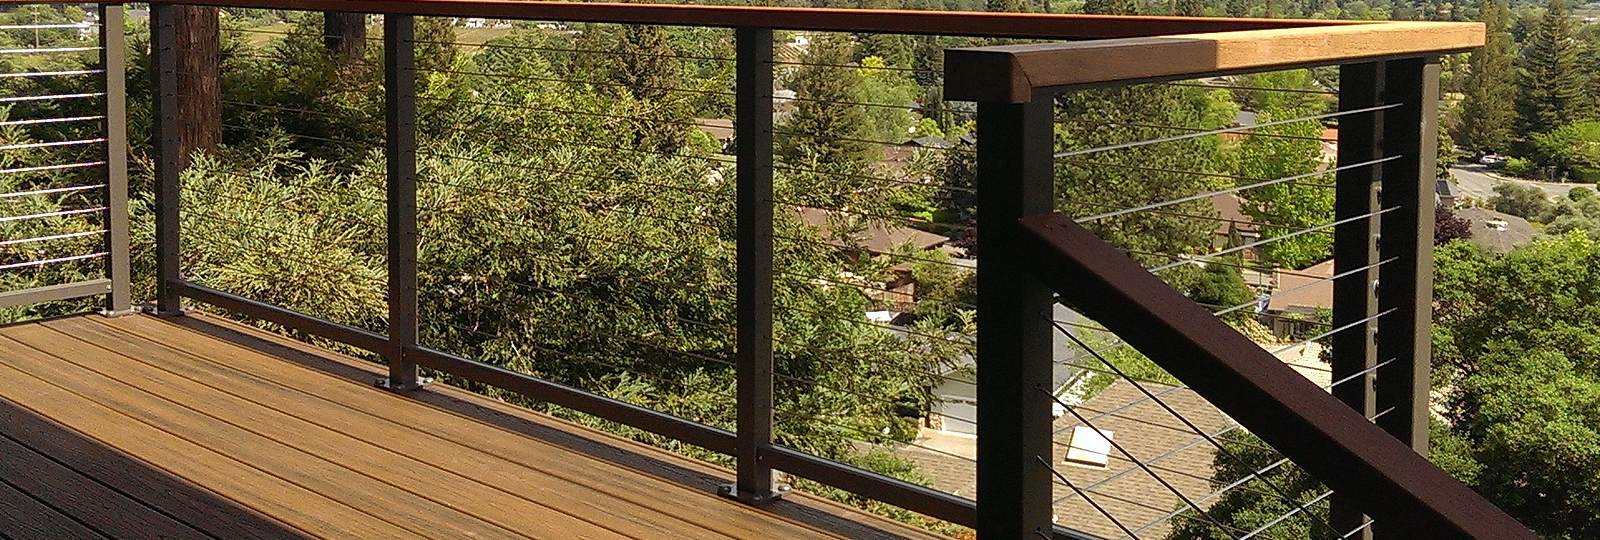 Exterior And Interior Cable Railing Cable Handrail Cable Rail | Cable Stair Railing Indoor | Exterior Irregular Stair | Vertical | Wood | 90 Degree Stair | Stainless